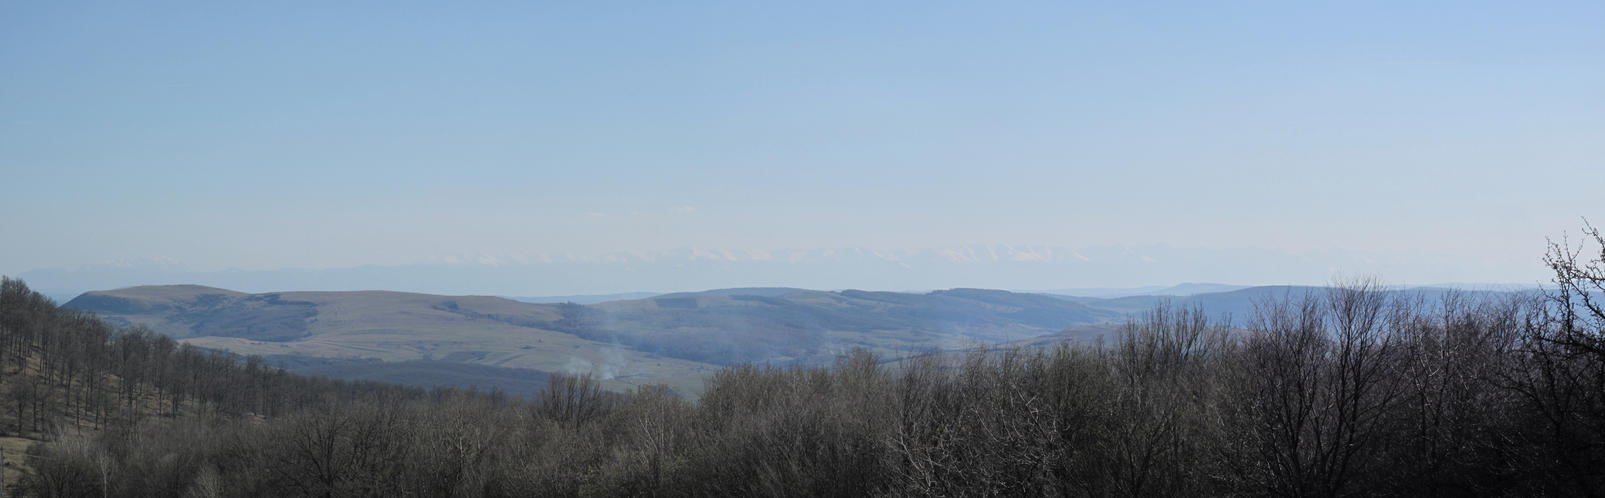 Panoramic view in April by Goppo713